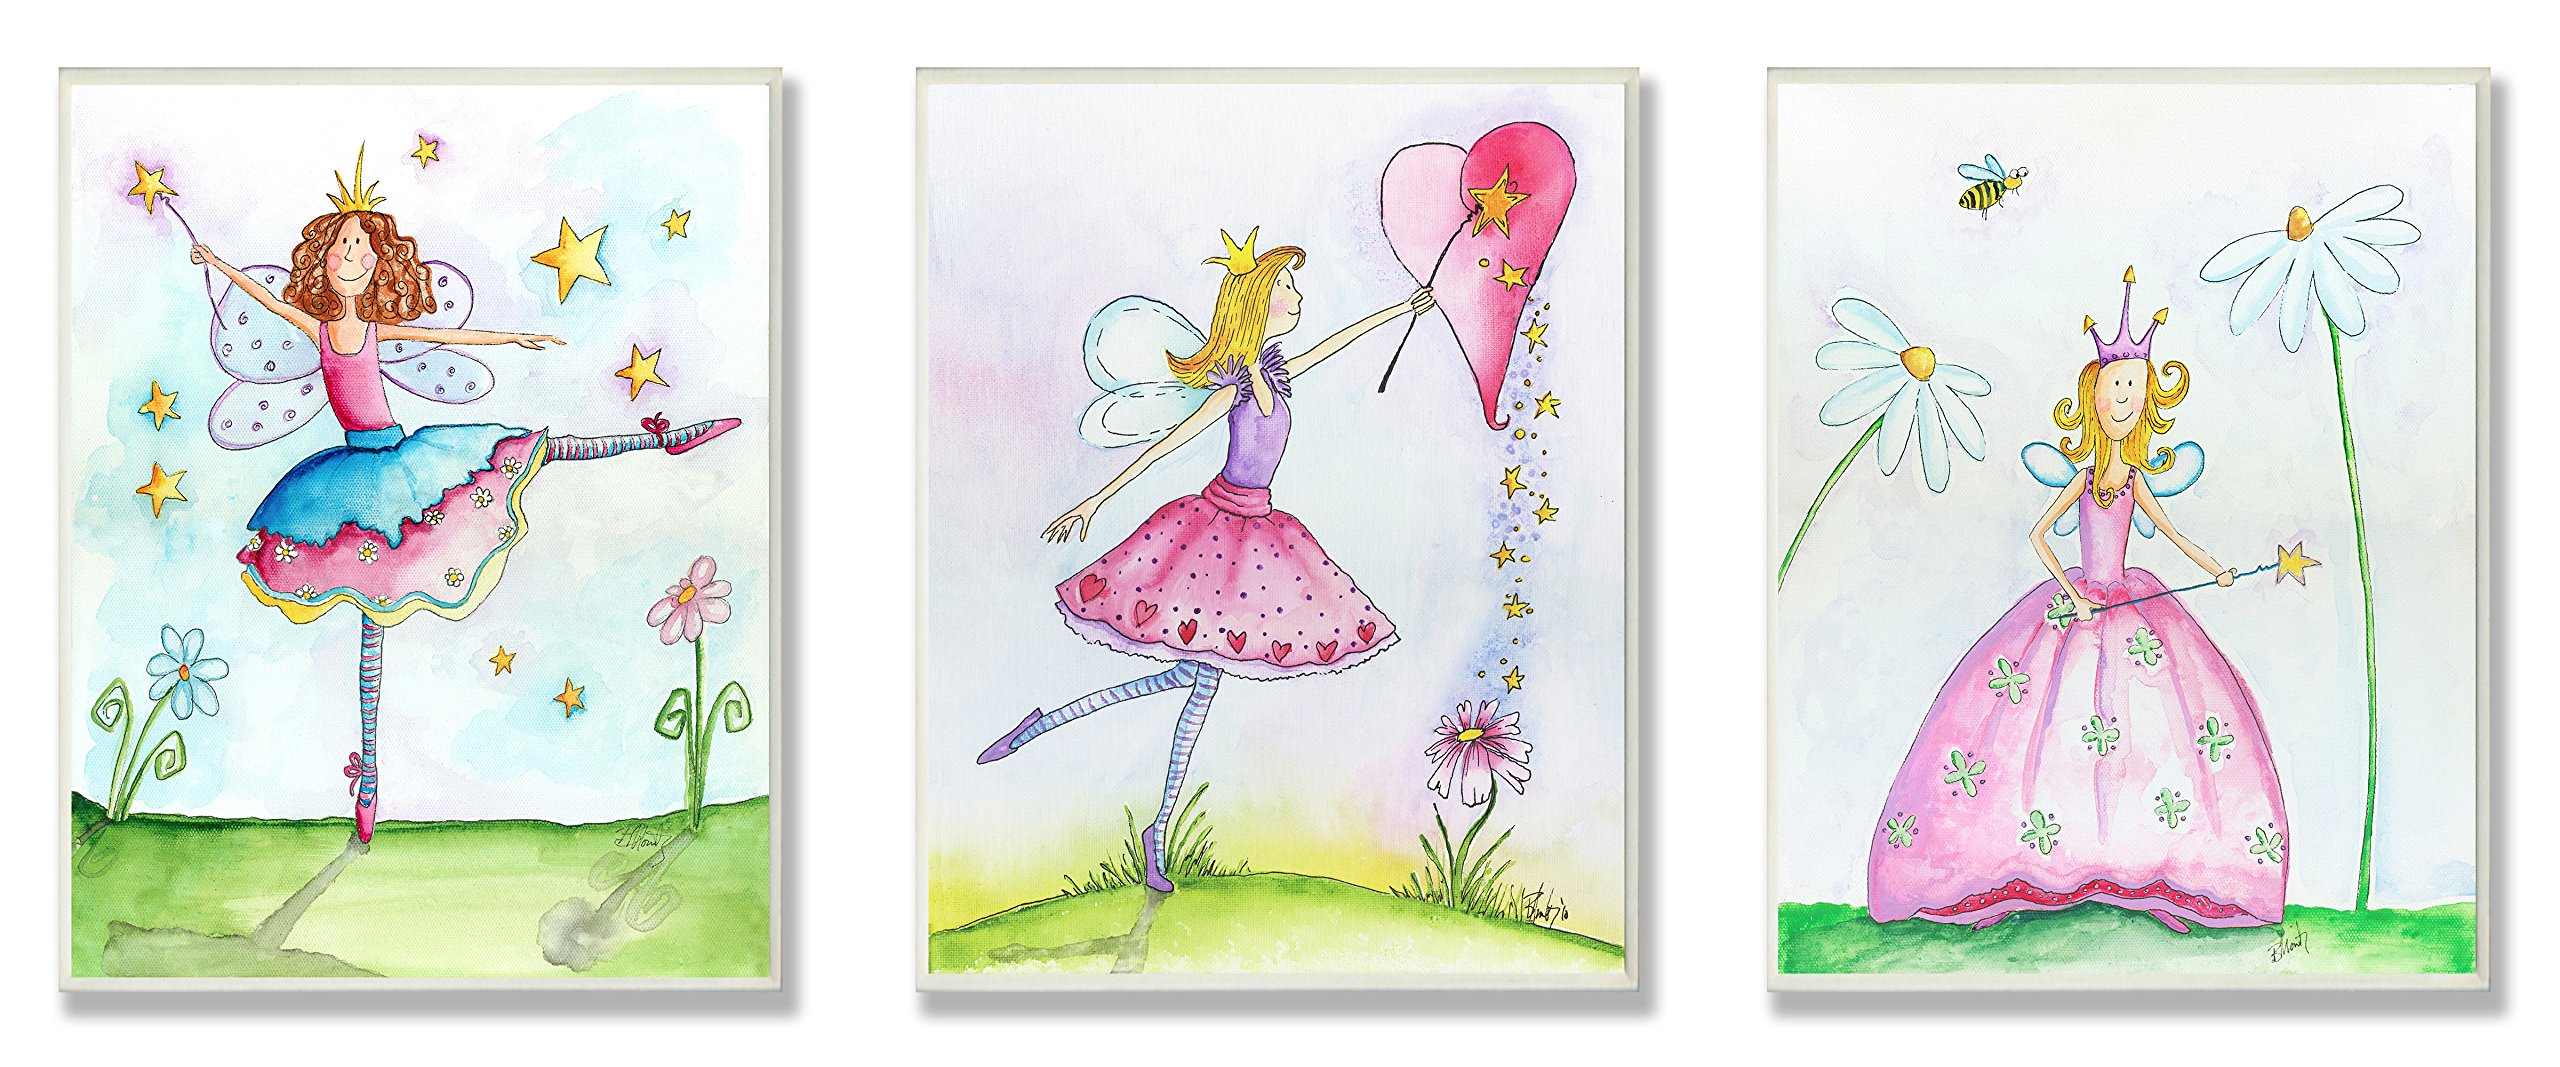 The Kids Room by Stupell Princess Fairies 3-Pc Wall Plaque Set by The Kids Room by Stupell